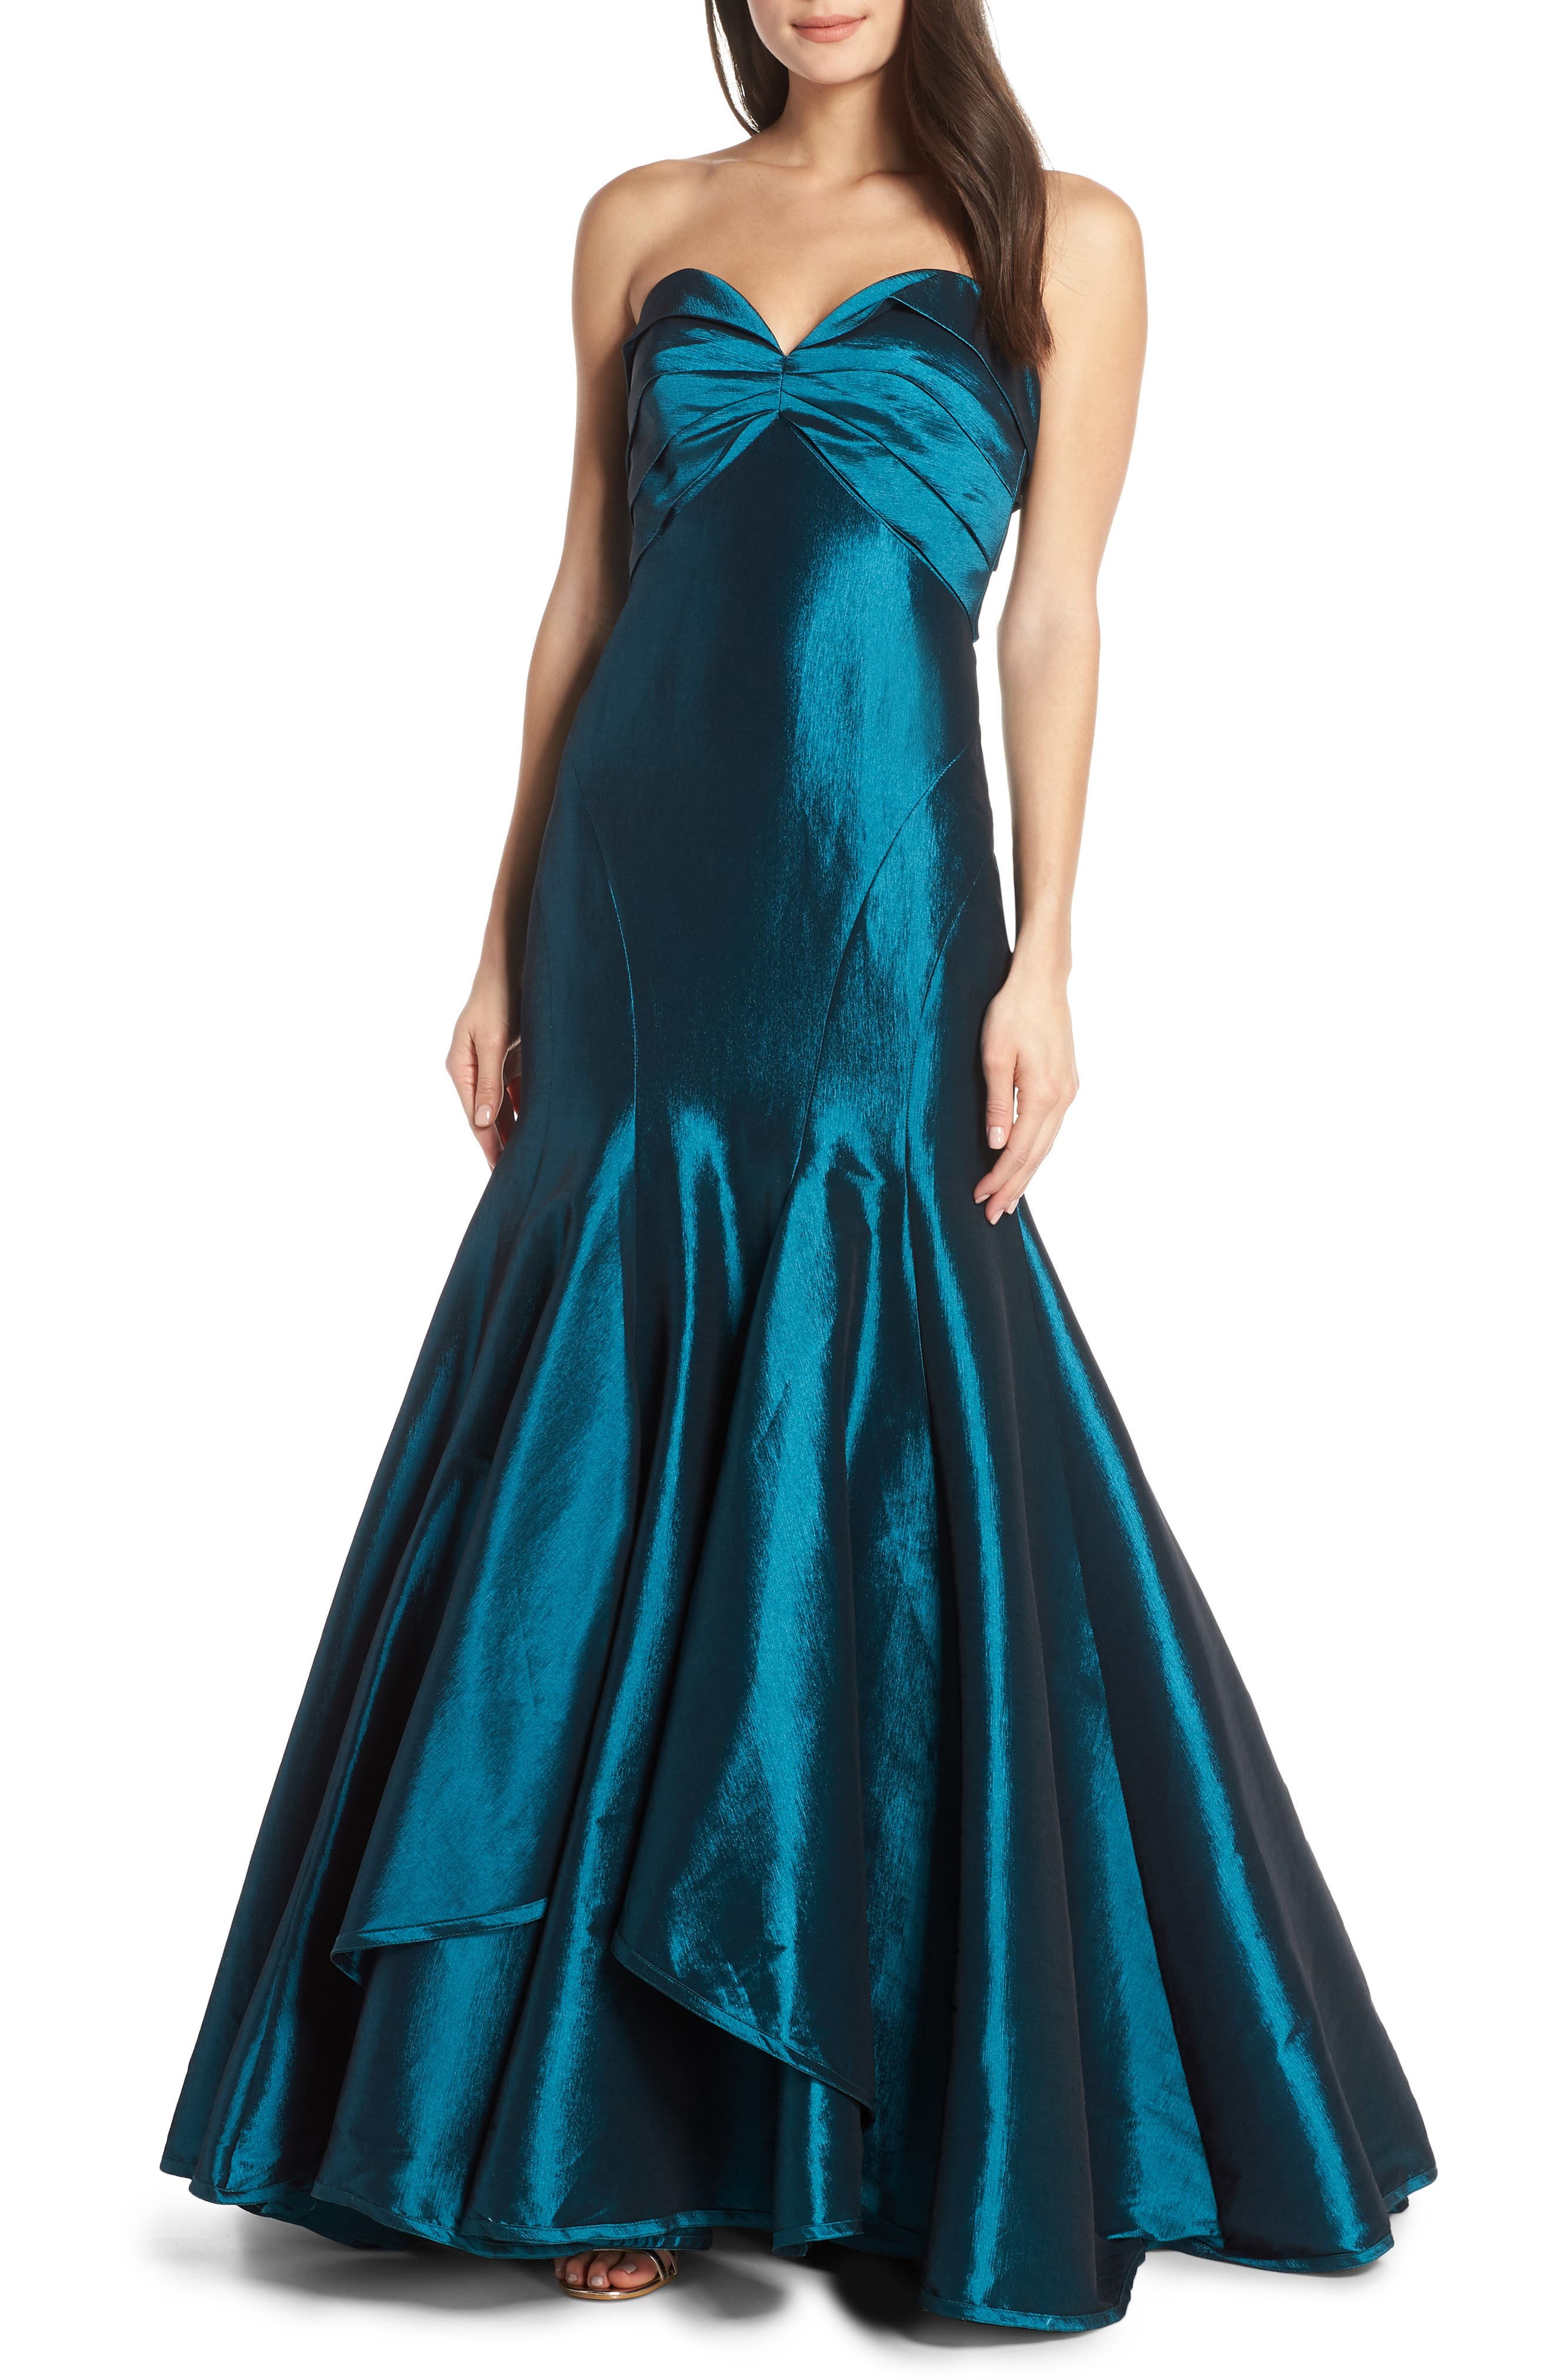 70s Prom, Formal, Evening, Party Dresses Womens MAC Duggal Strapless Satin Mermaid Evening Dress $298.00 AT vintagedancer.com